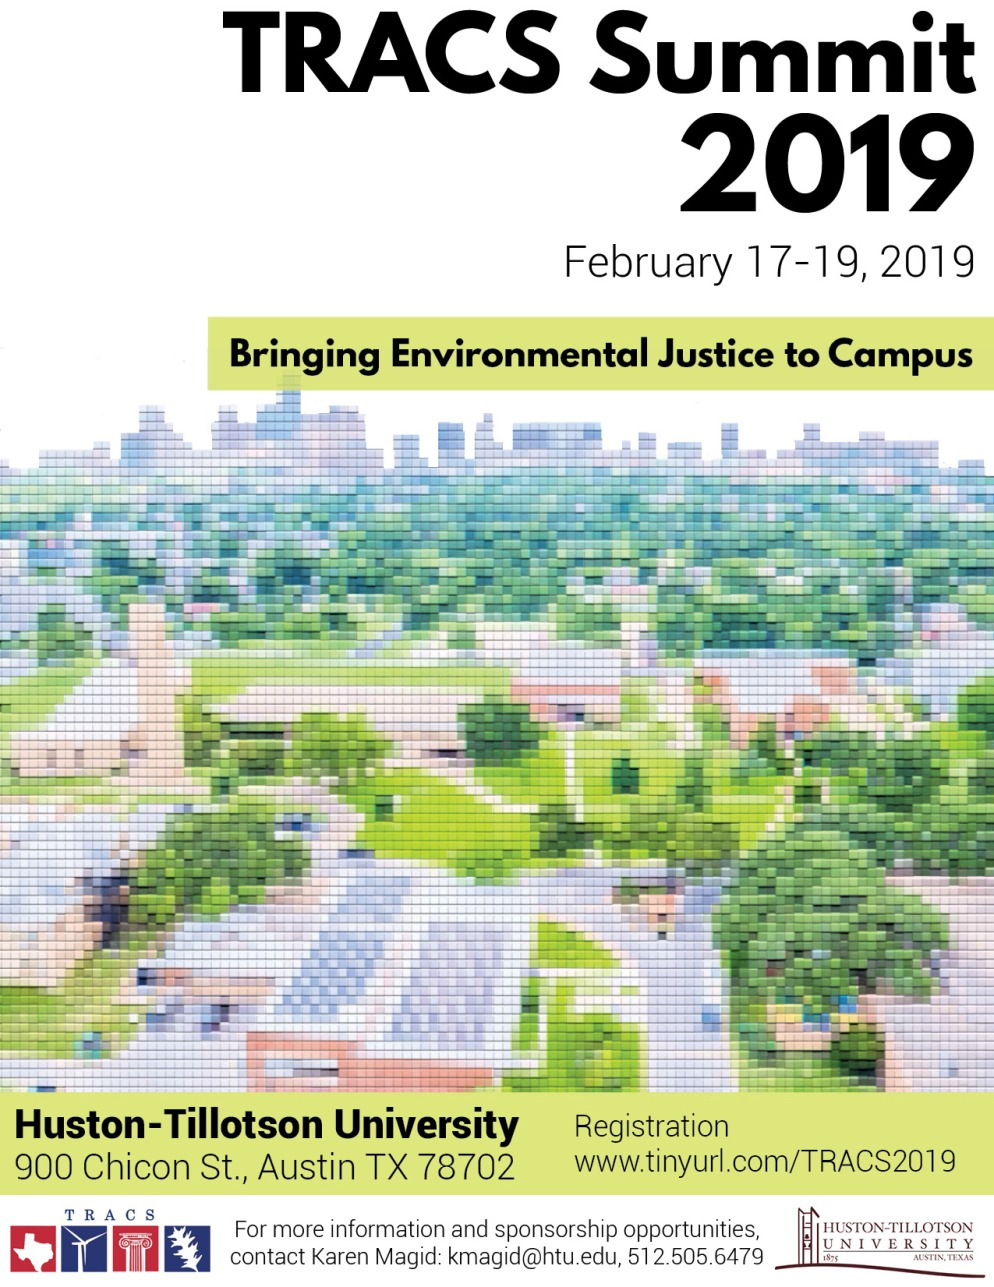 TRACS2019 flyer eventbrite